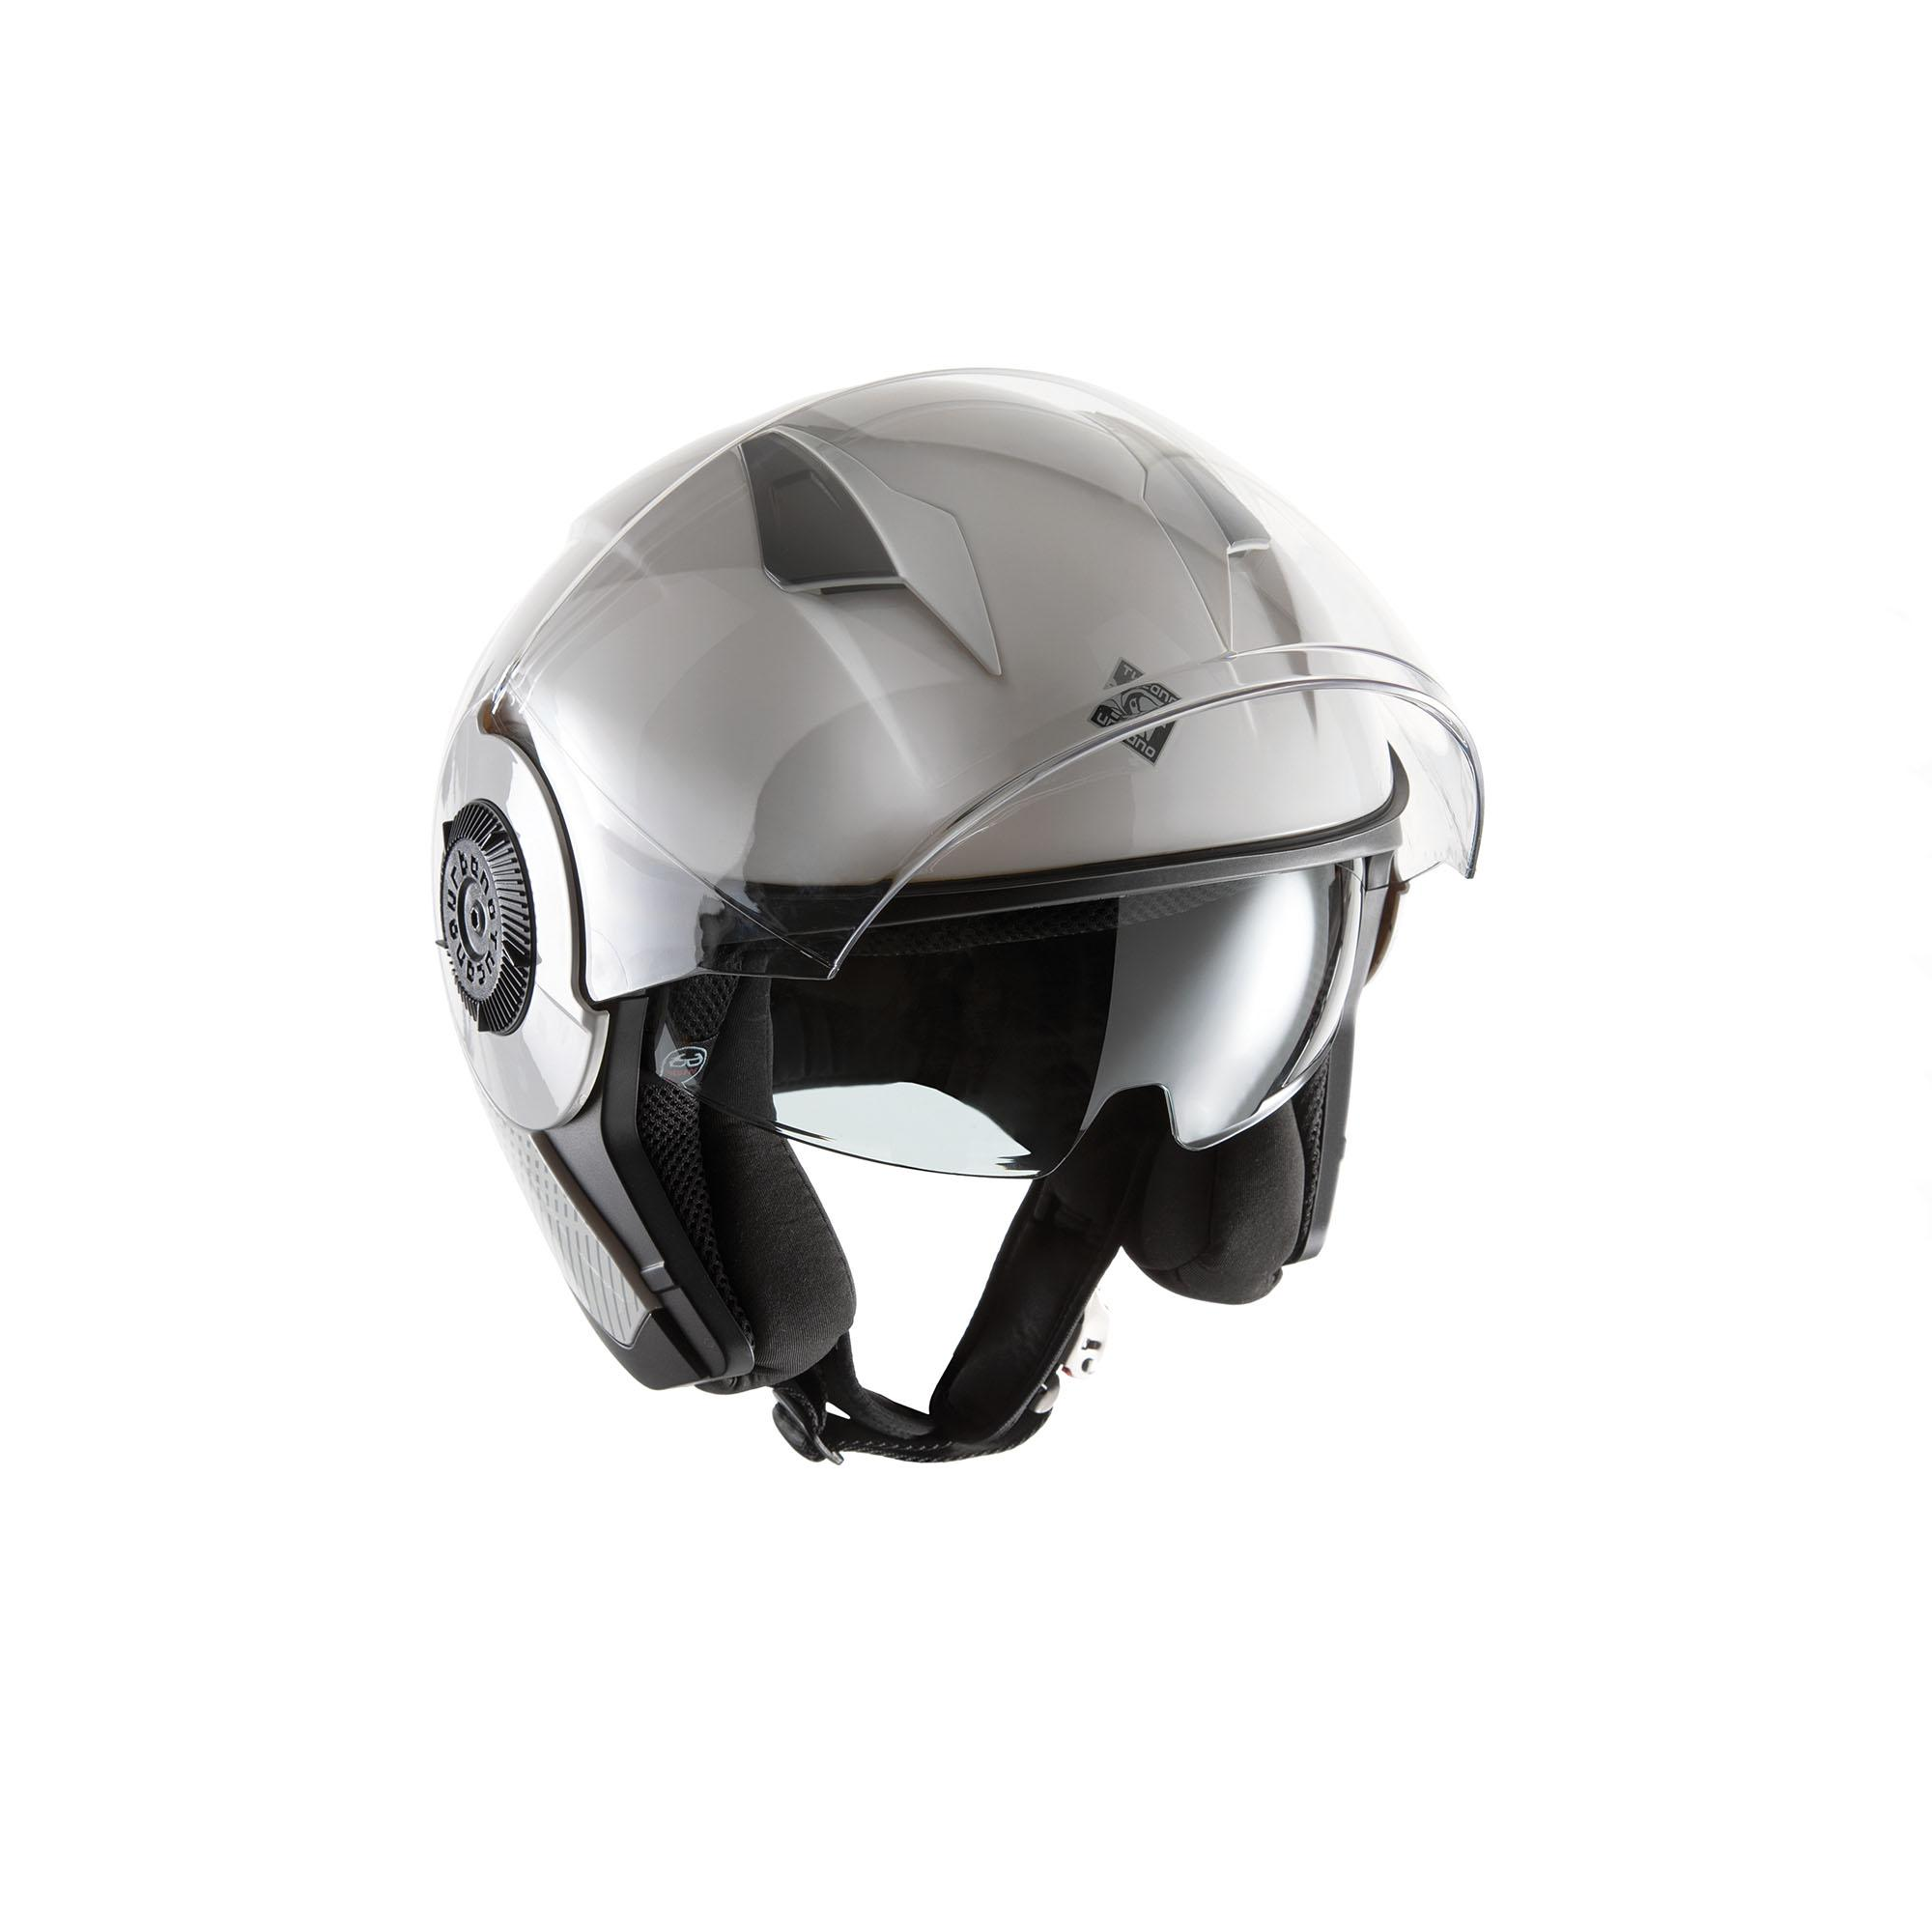 Casco Jet El'tange White Graphic–A Lucido